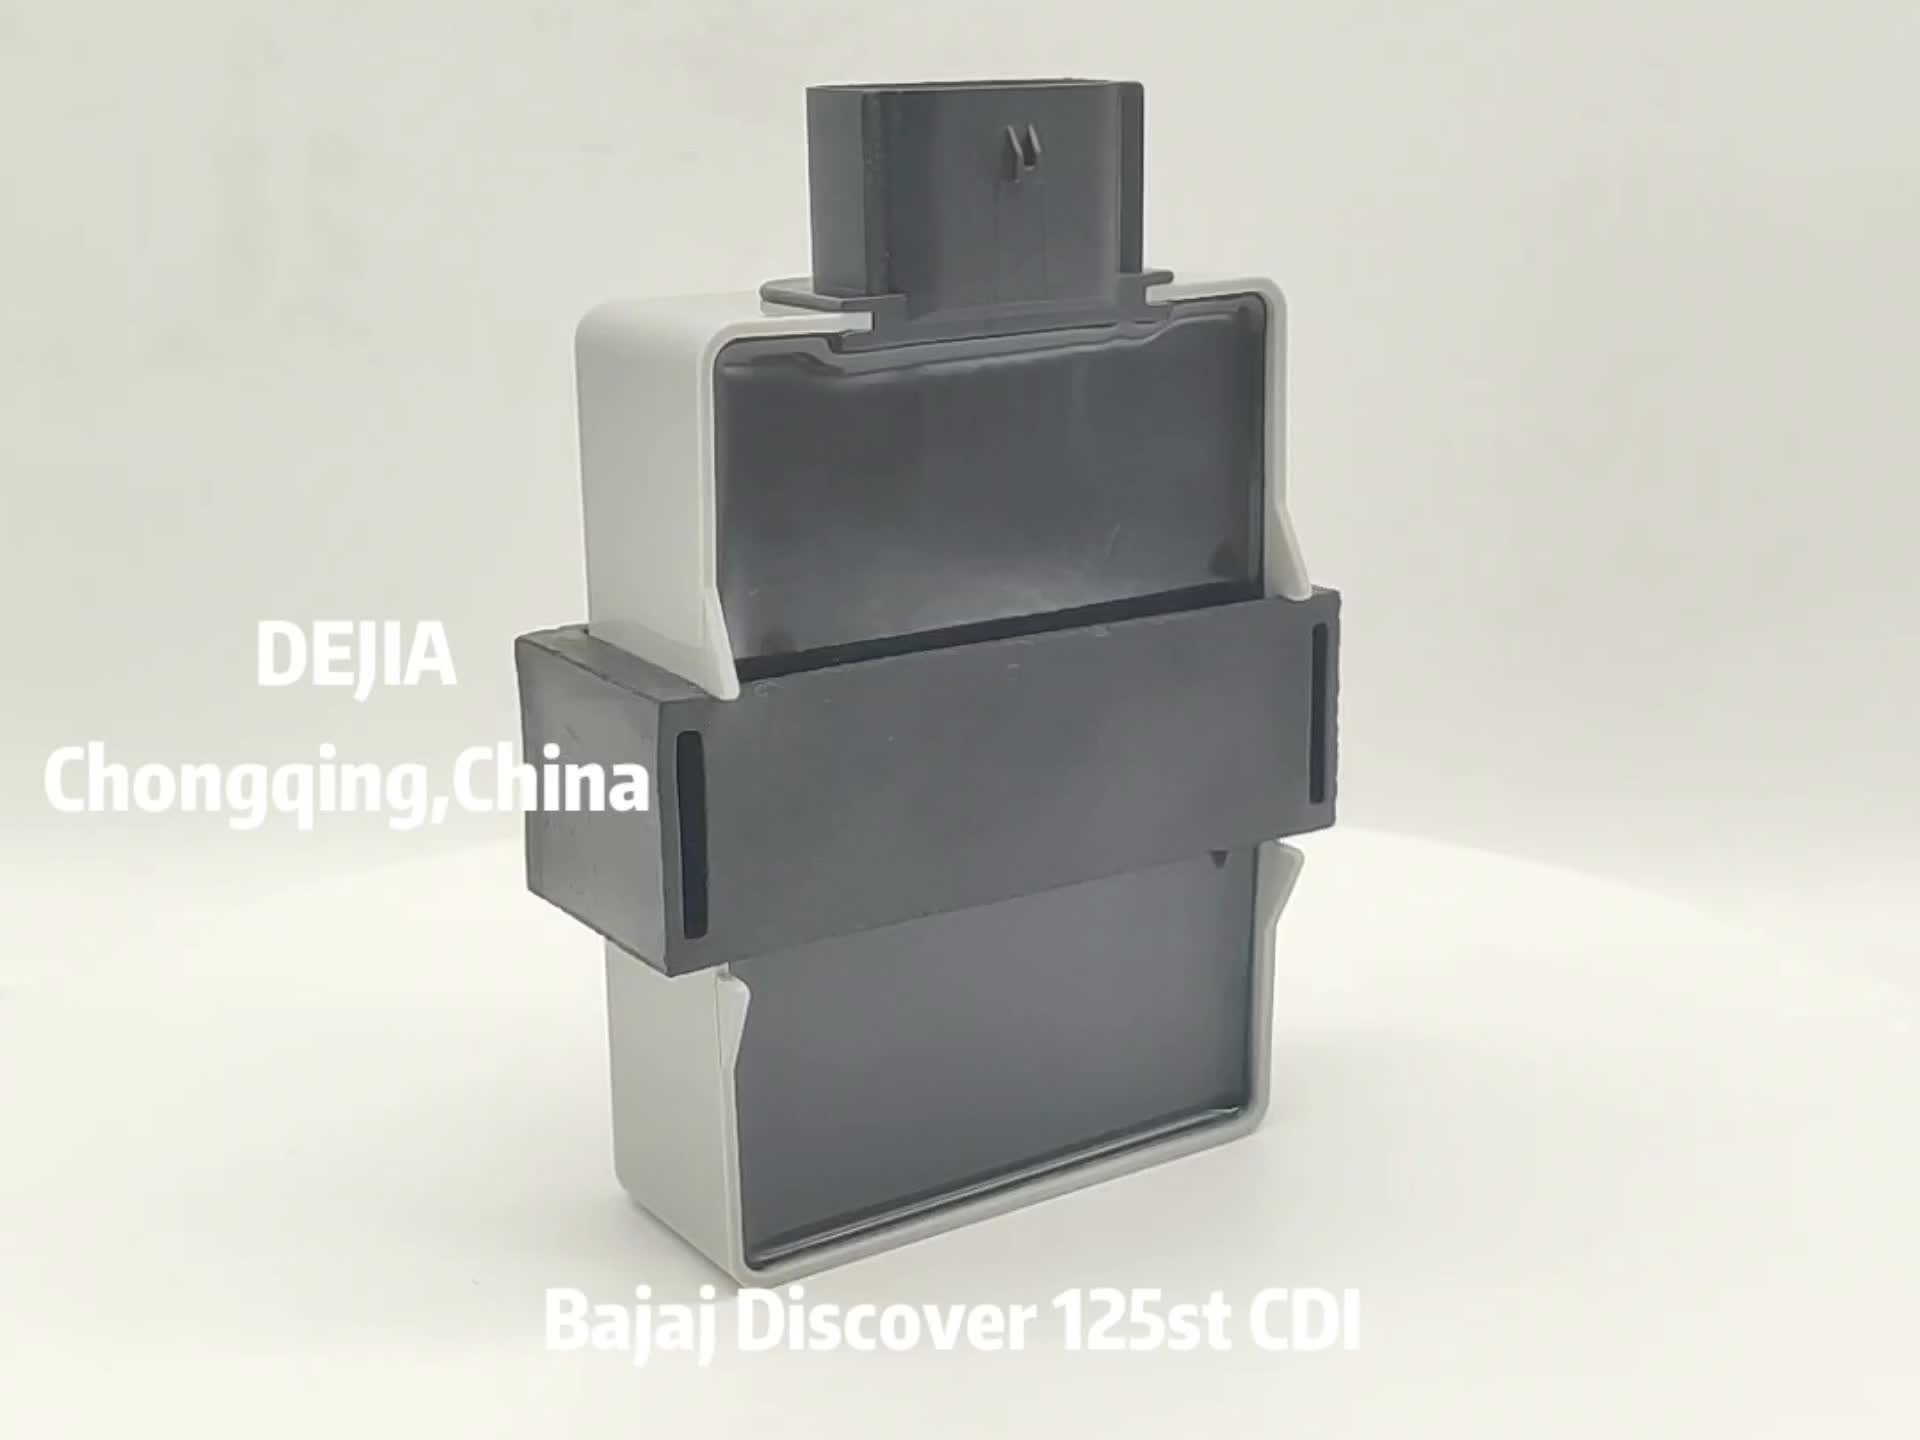 High Quality for Bajaj Discover Spare Parts For Bajaj Discover 125 st Motorcycle CDI